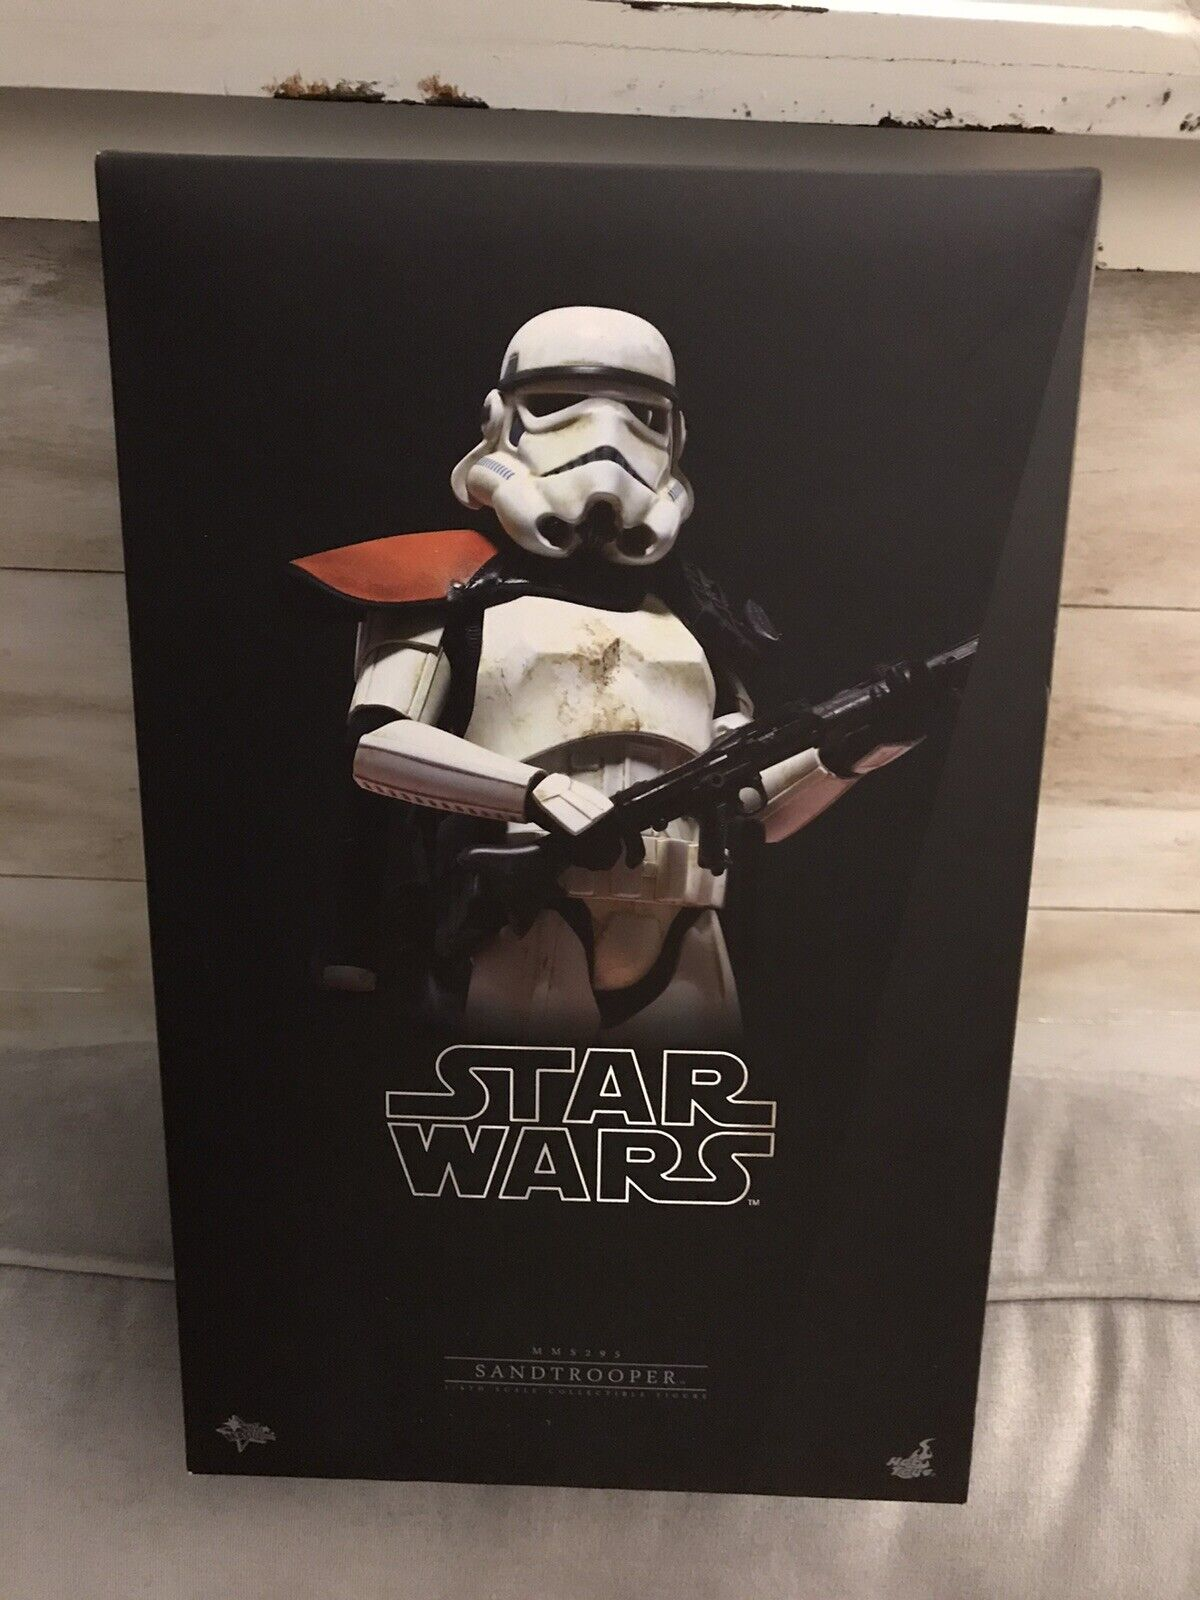 Hot Toys Star Wars MMS295 Sandtrooper 1/6th scale. Brand New In Box on eBay thumbnail